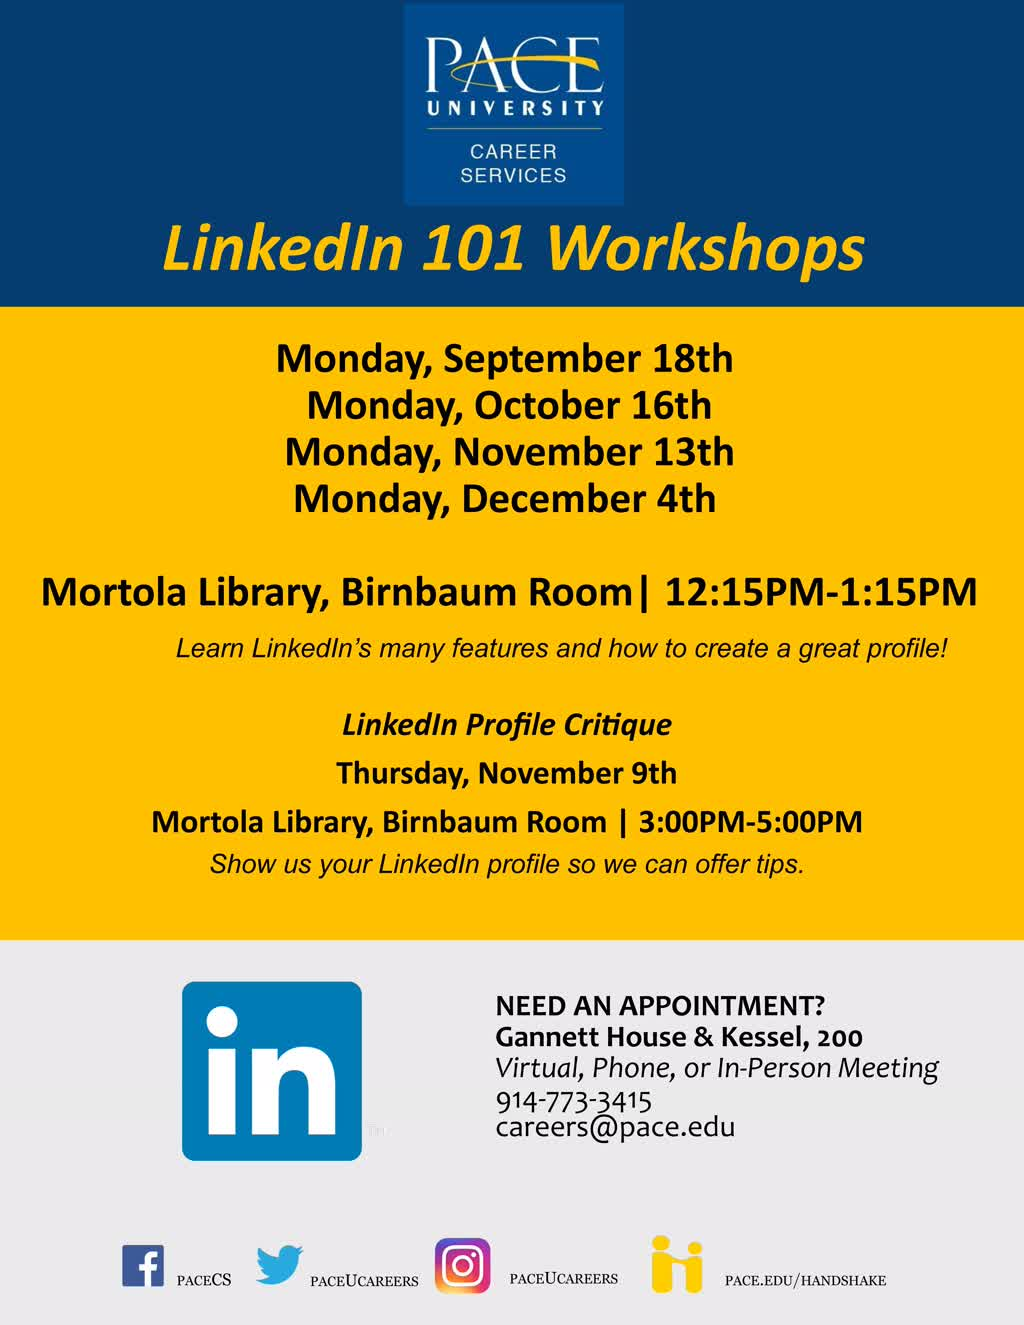 Information regarding LinkedIn Workshops is as follows Create Your Own Tags: is #PaceUMarketReady and Start date is September 06 2017 and End Date is December 22 2017 and File is Browse and Group Name is Career Services and Affiliation is Department and Email is dgasparro@pace.edu and Name is Domenick Gasparro and File Name is 1508166068_comp.jpg and Name of Ad/Event is LinkedIn Workshops and Panel is Side and